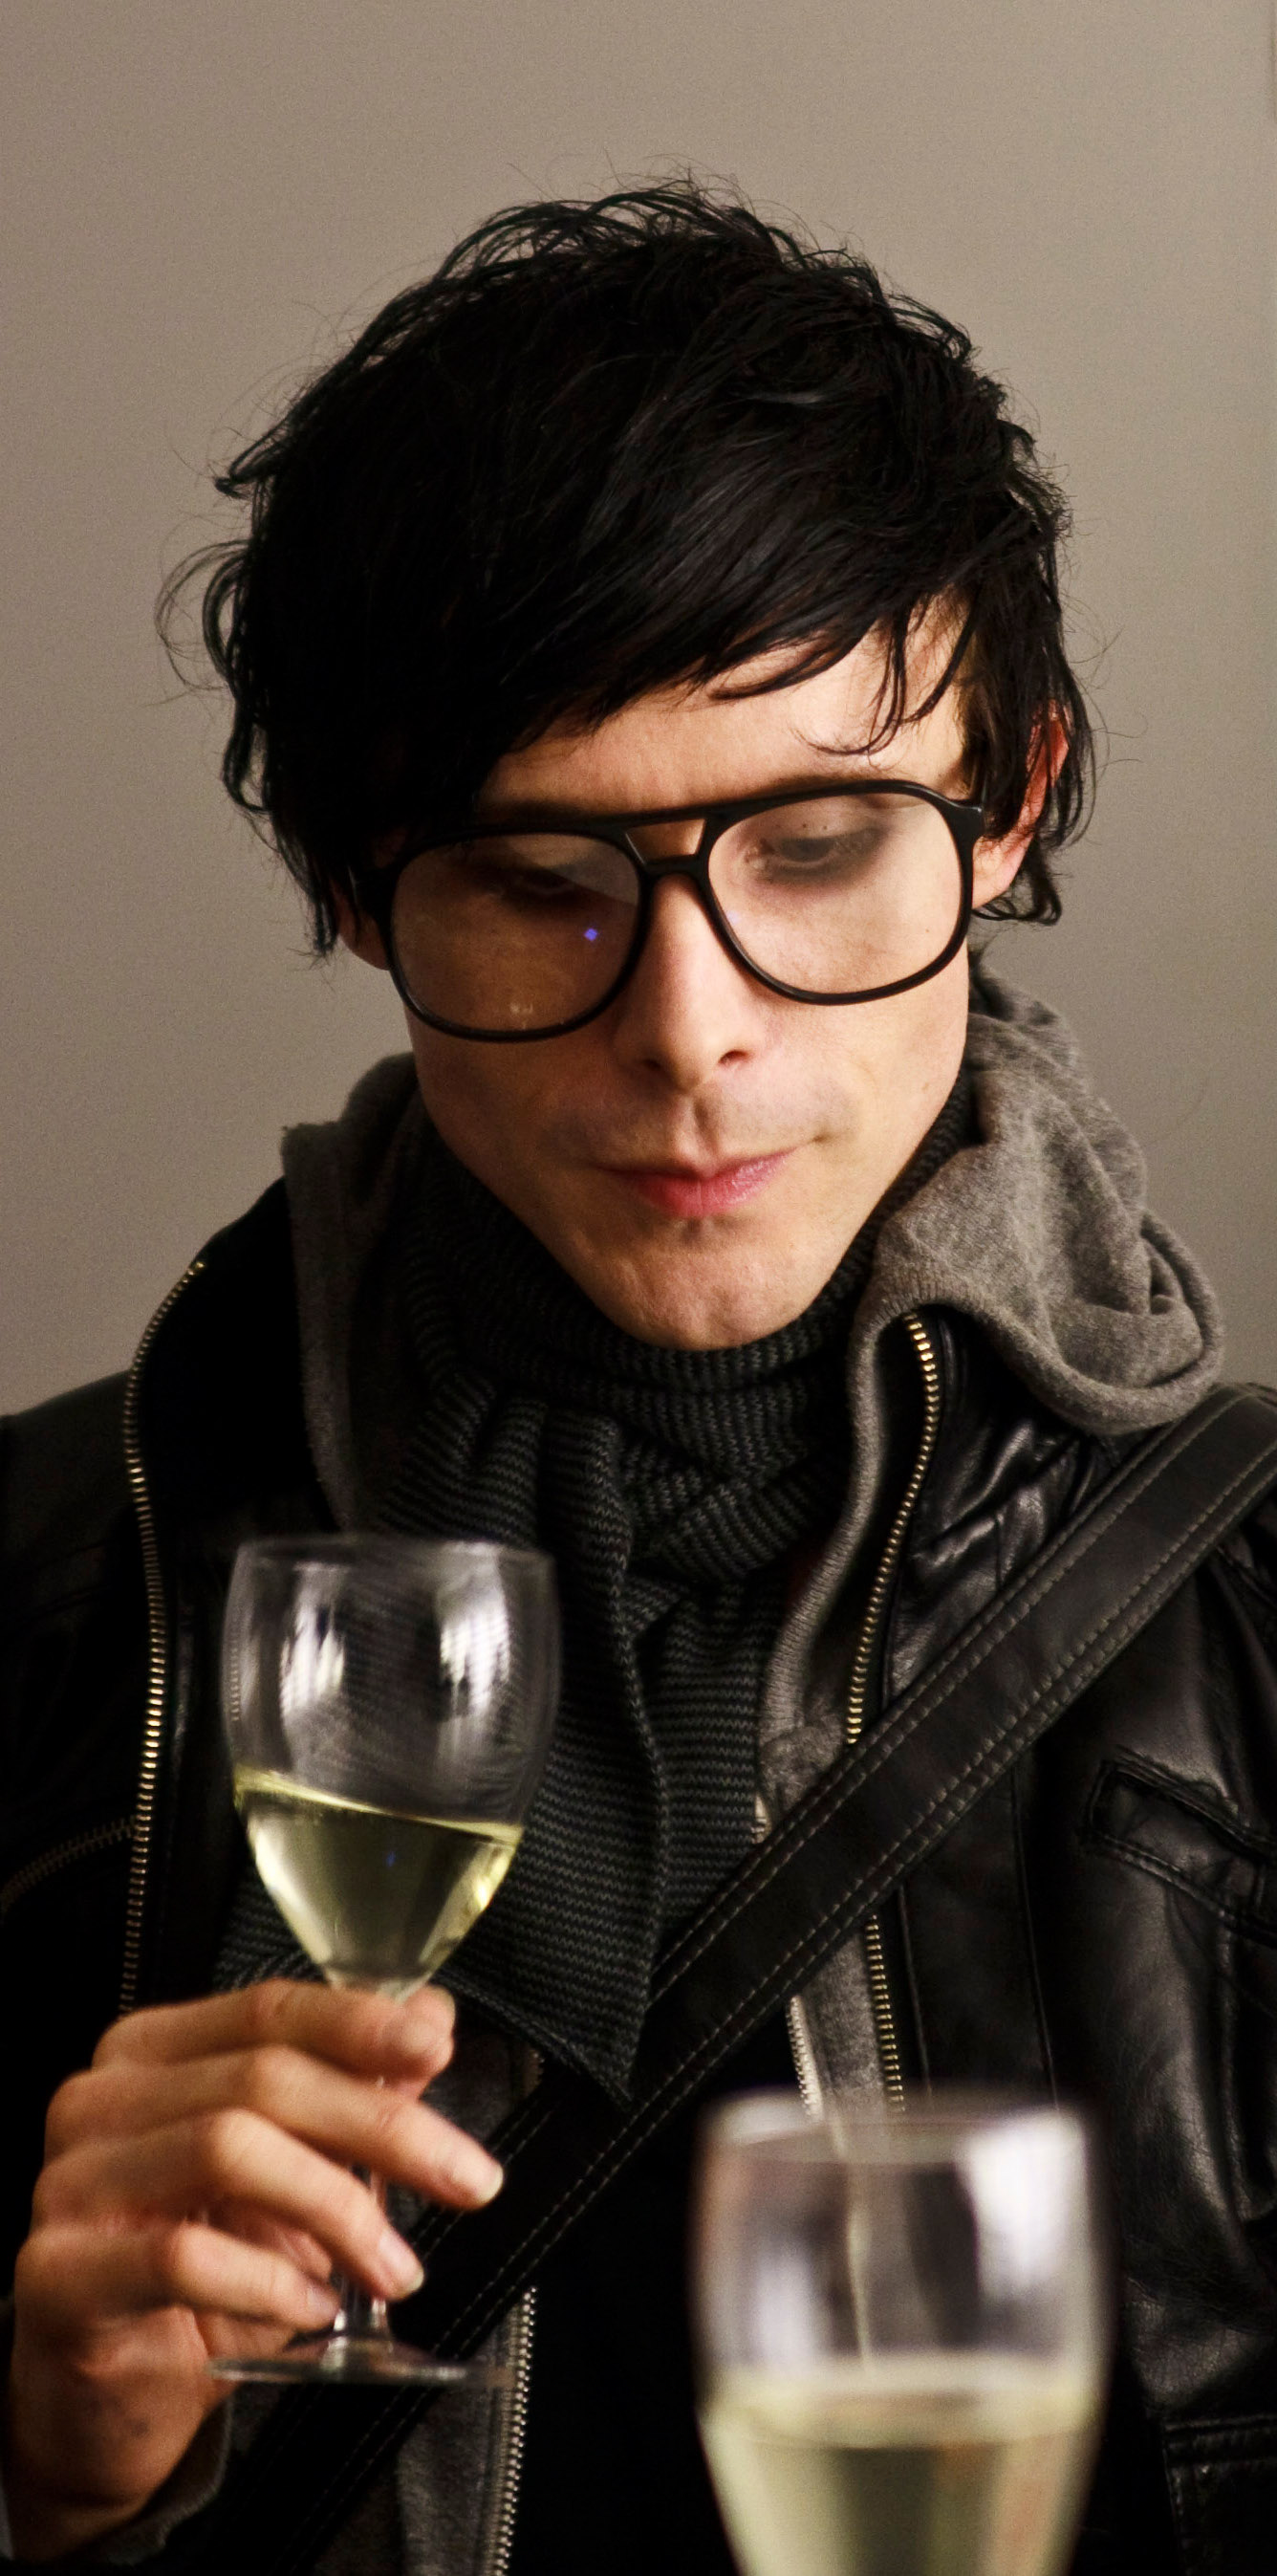 ¿En que estas pensando en estos momentos?  - Page 3 Chris_Corner_at_IAMX_Autograph_Session_in_Munich_2009_cropped